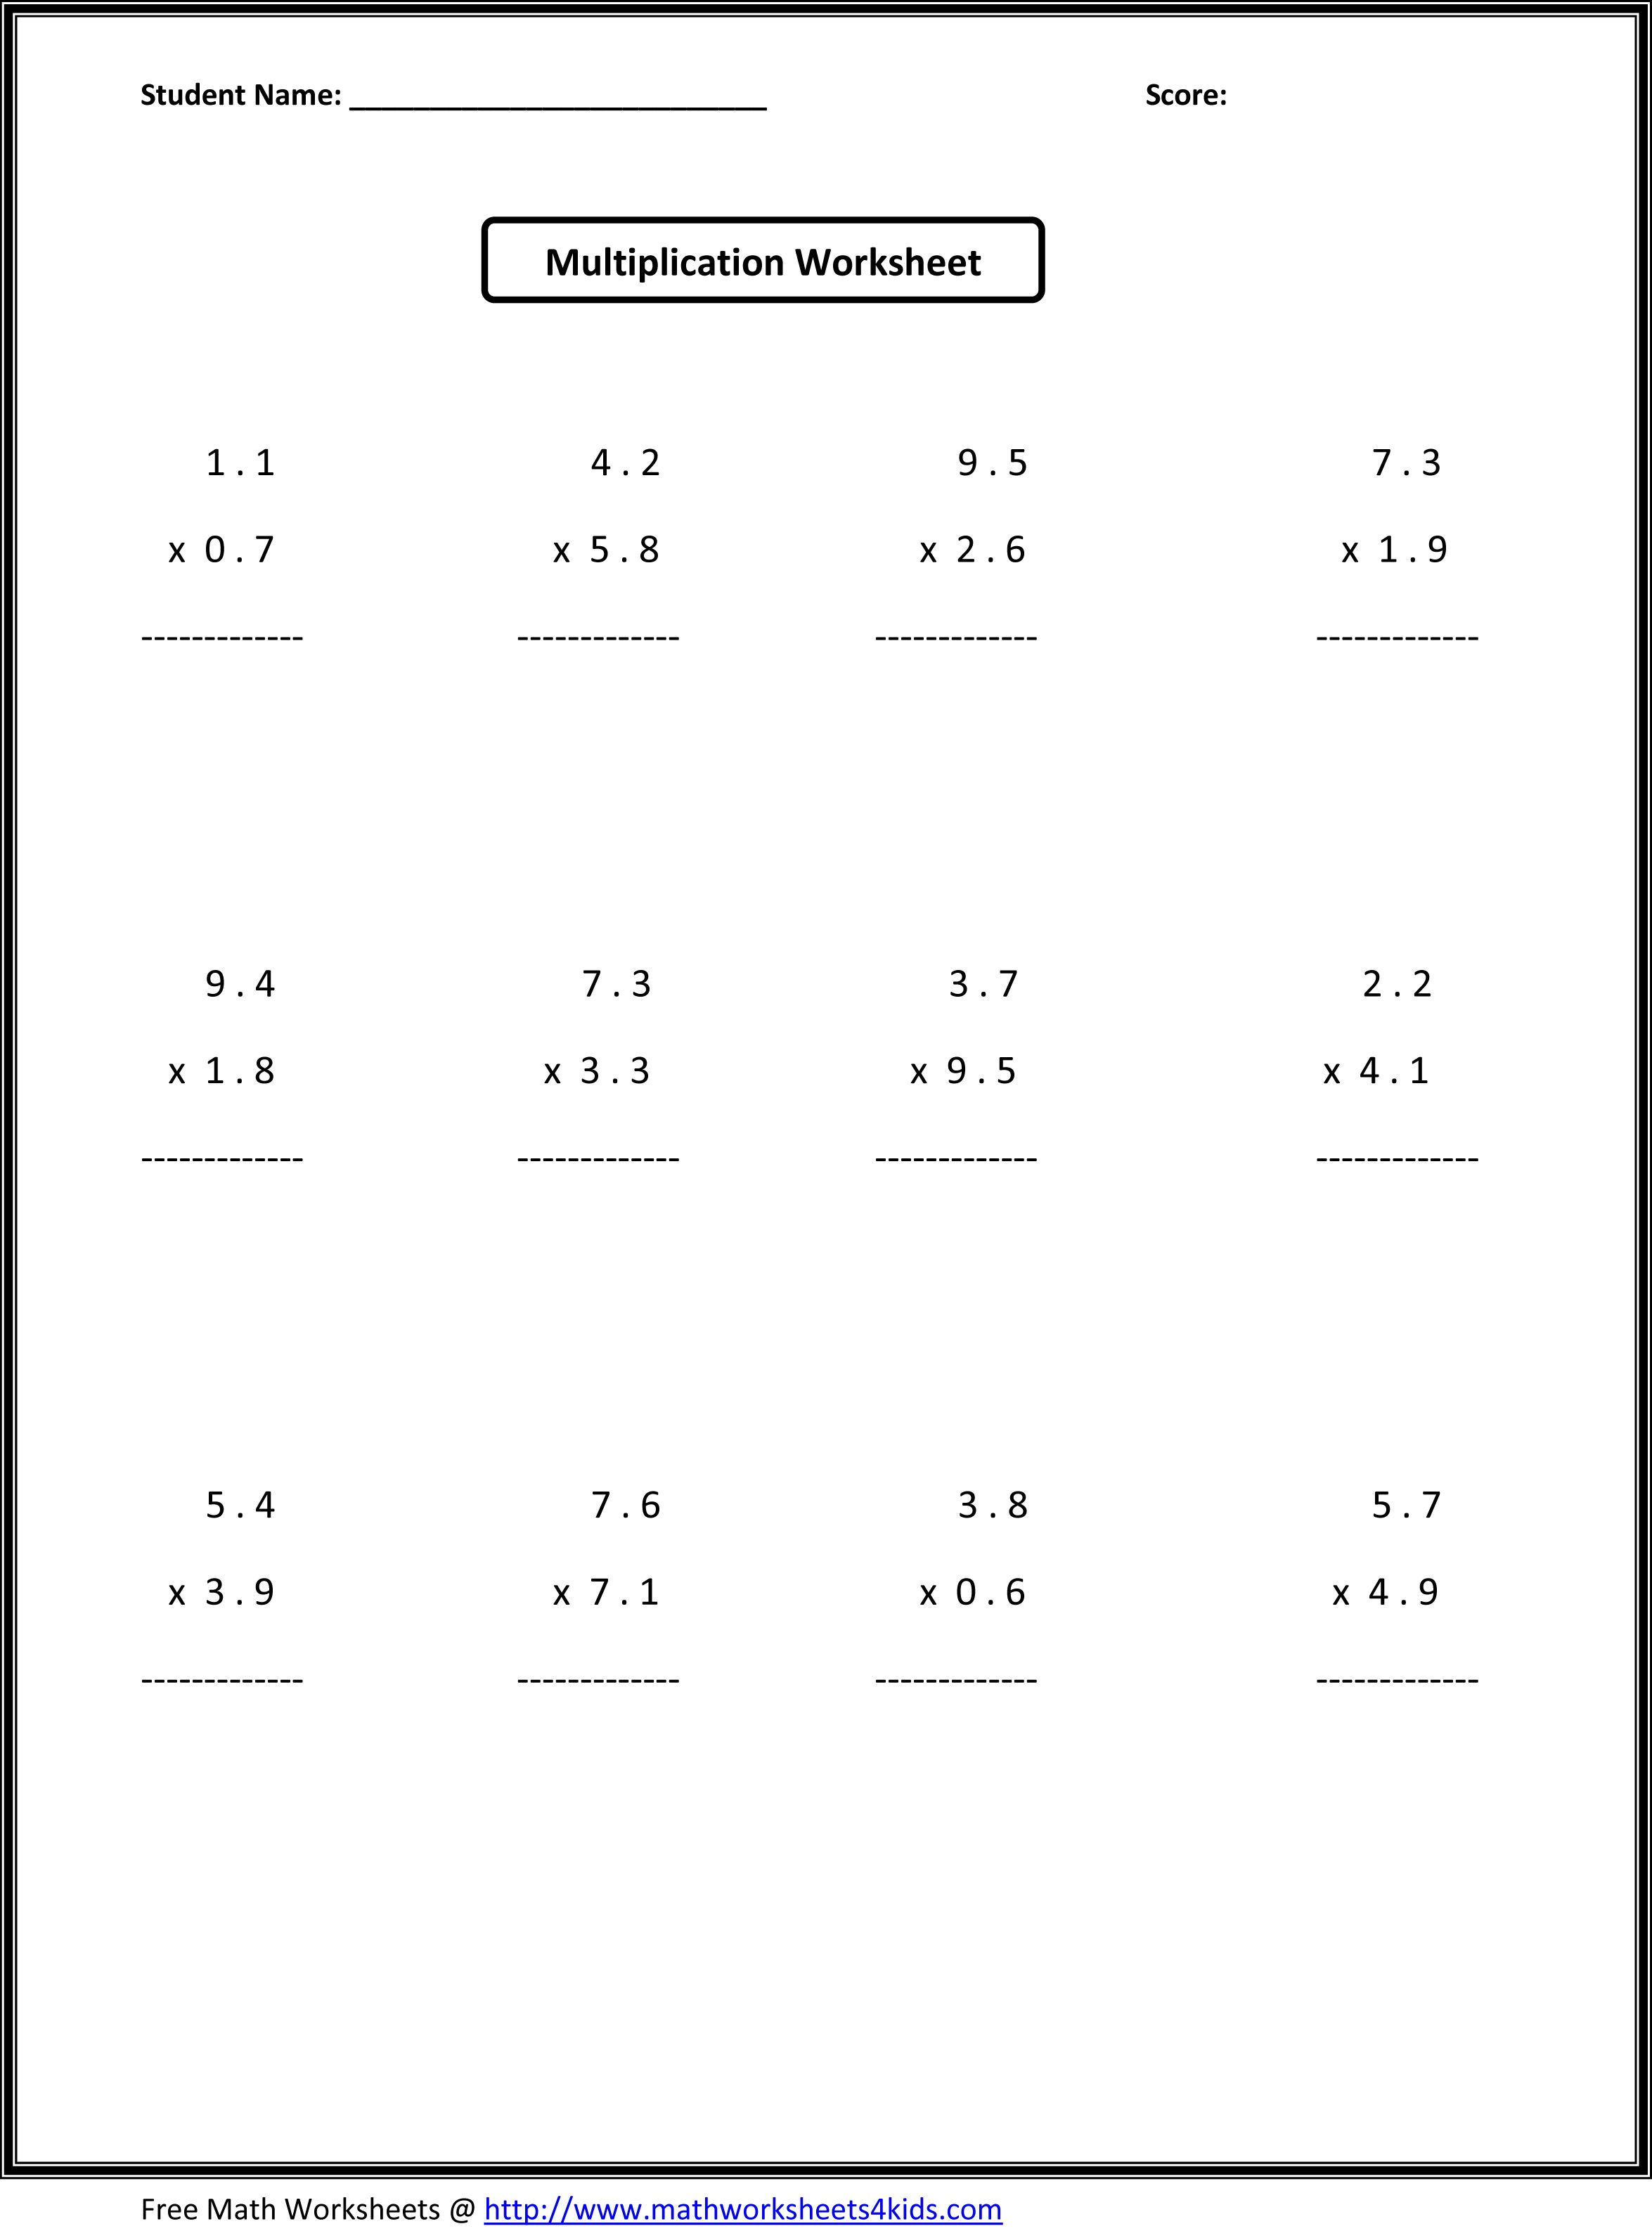 Printables 6th Grade Math Algebra Worksheets Joomsimple – 6th Grade Math Exponents Worksheets